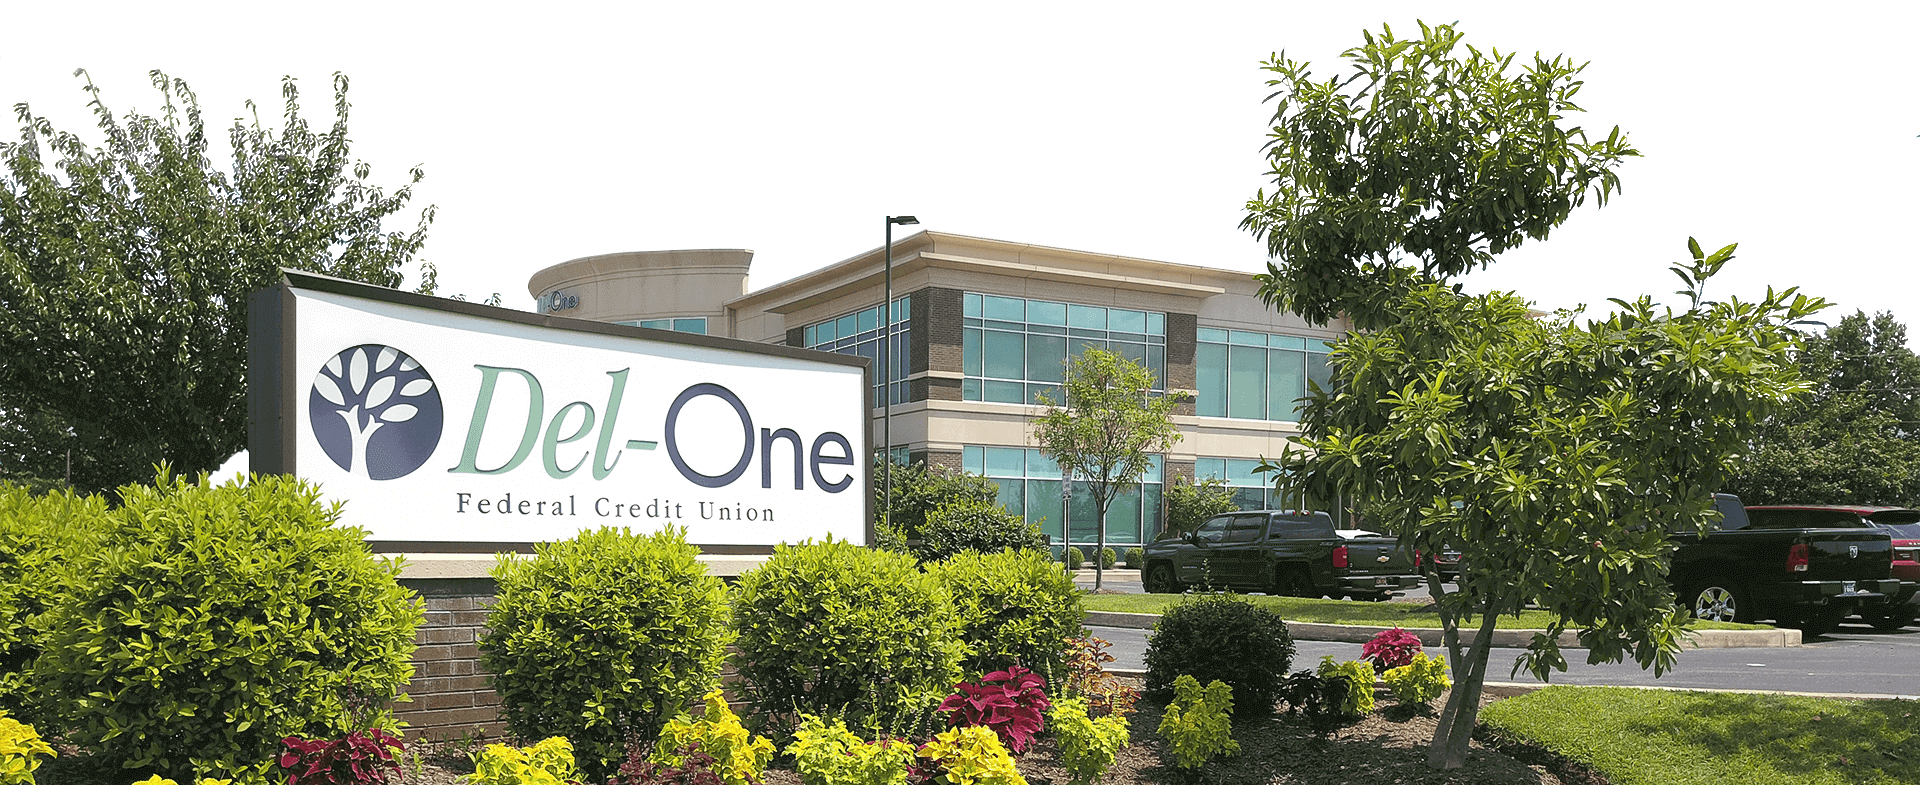 Image of an outdoor banner of Del-One FCU